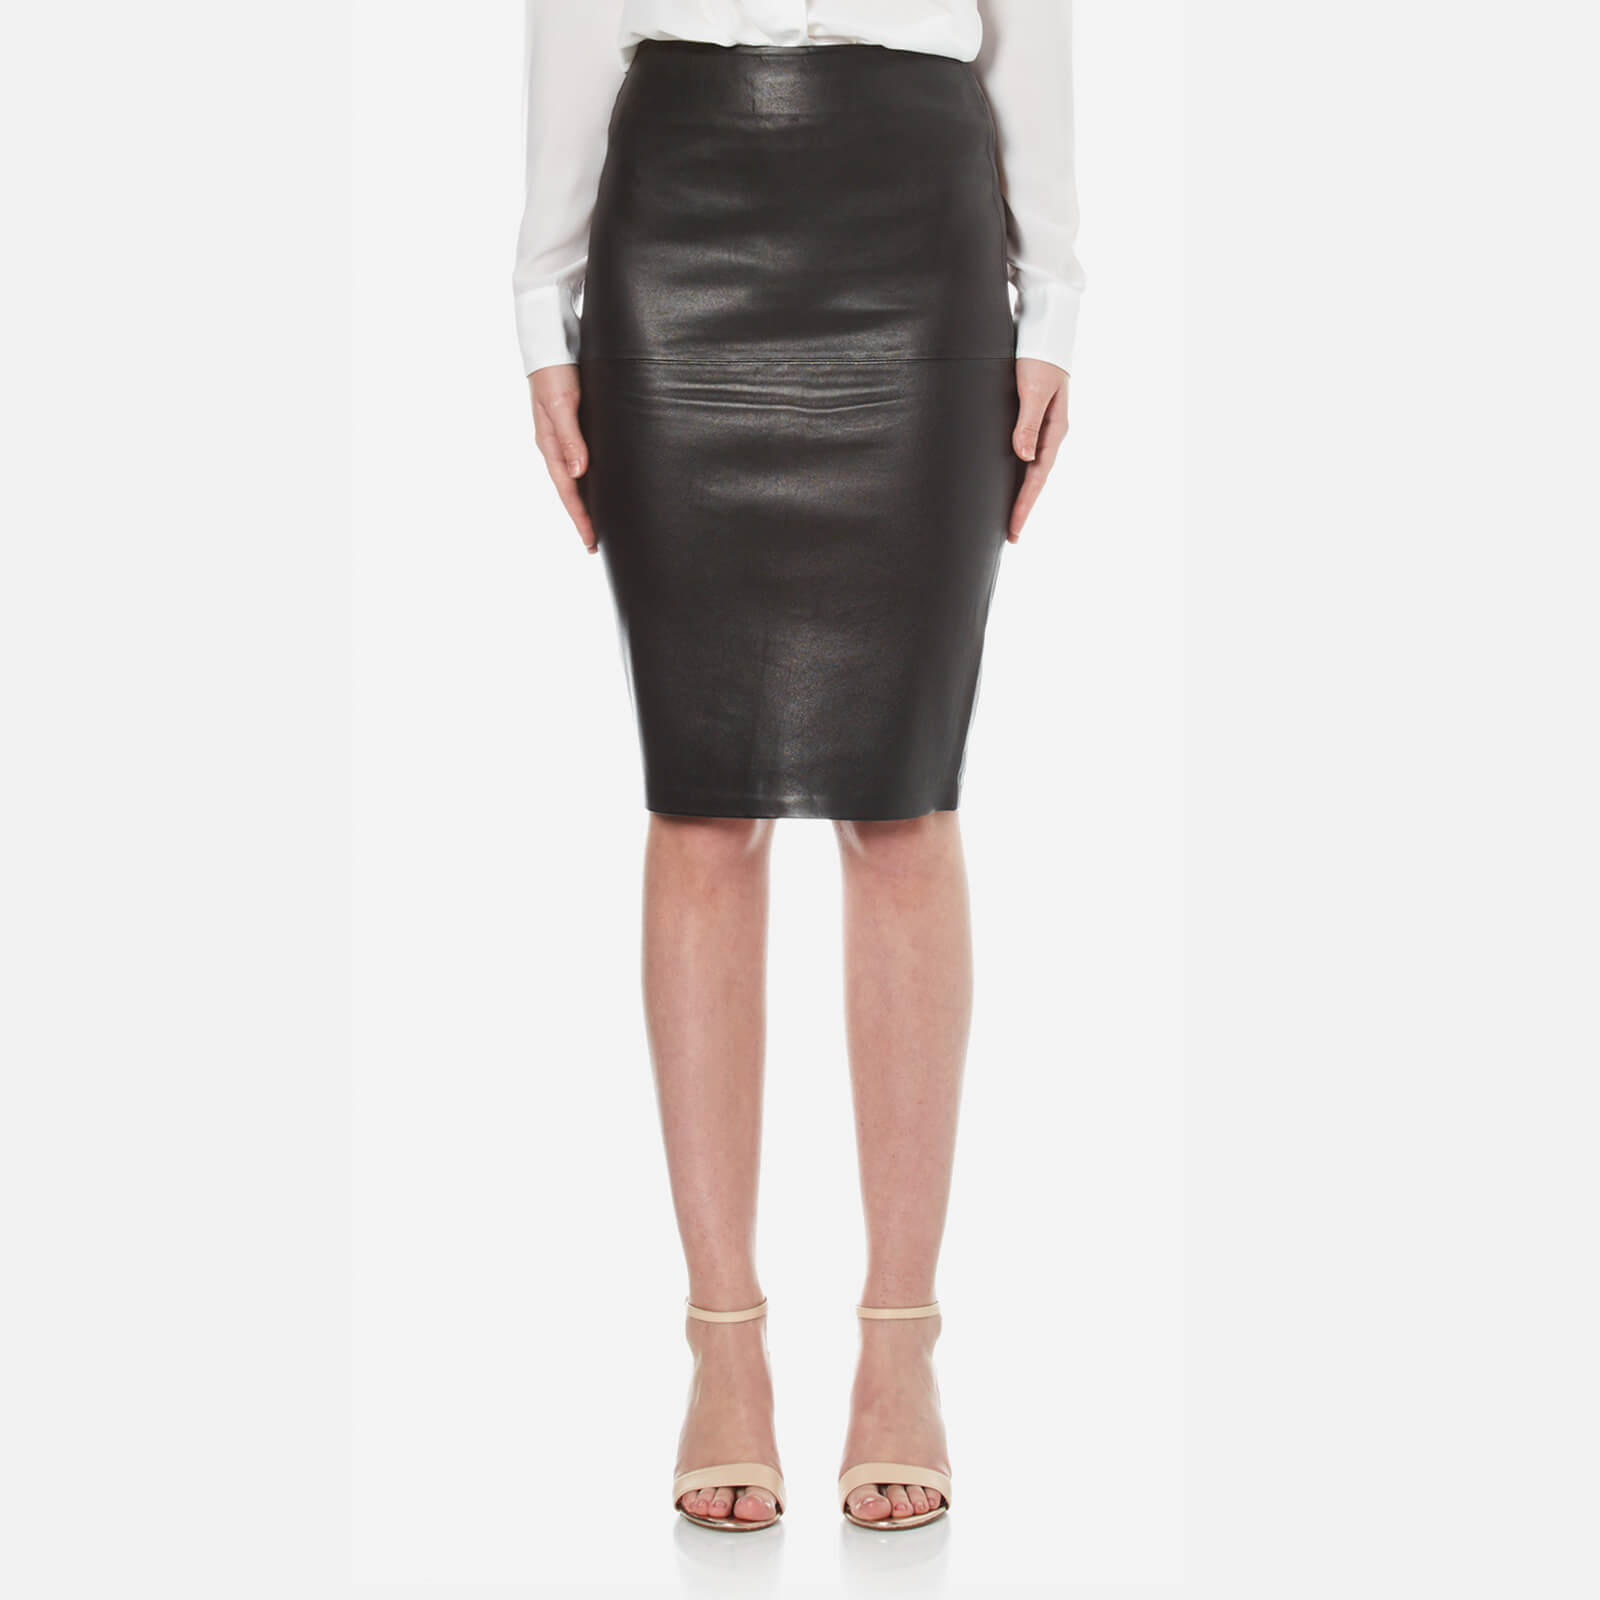 29f91a6350 By Malene Birger Women's Florida Pencil Skirt - Black - Free UK Delivery  over £50